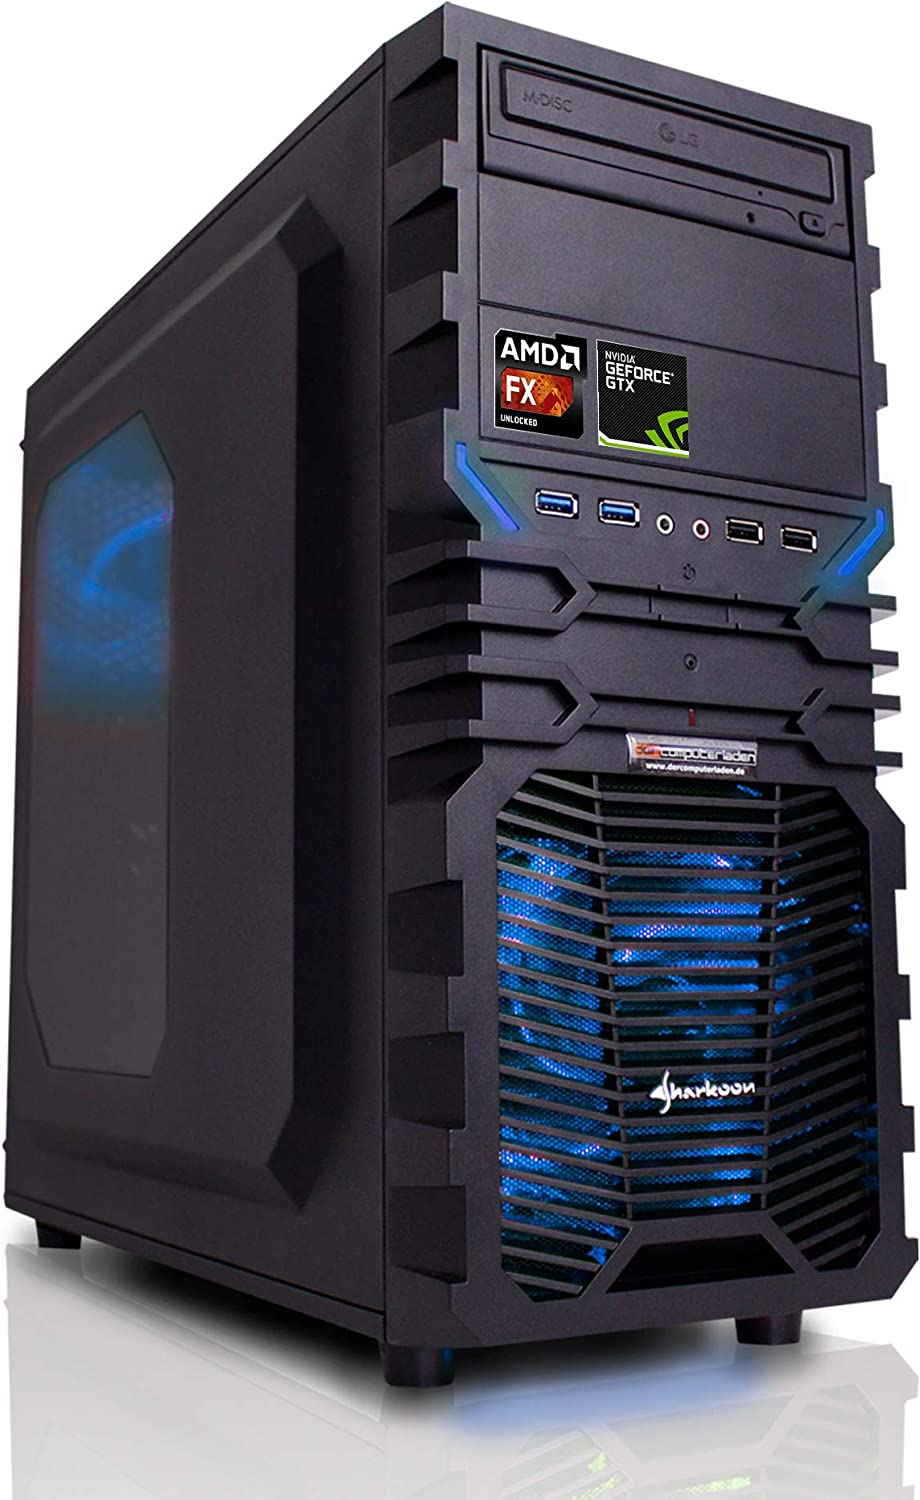 dercomputerladen PC Gaming Sistema AMD, FX-6300 6x3,5 GHz - FX 6300 con nVidia GTX 1080 8GB, mit 8GB RAM und 2000GB HDD: Amazon.es: Informática